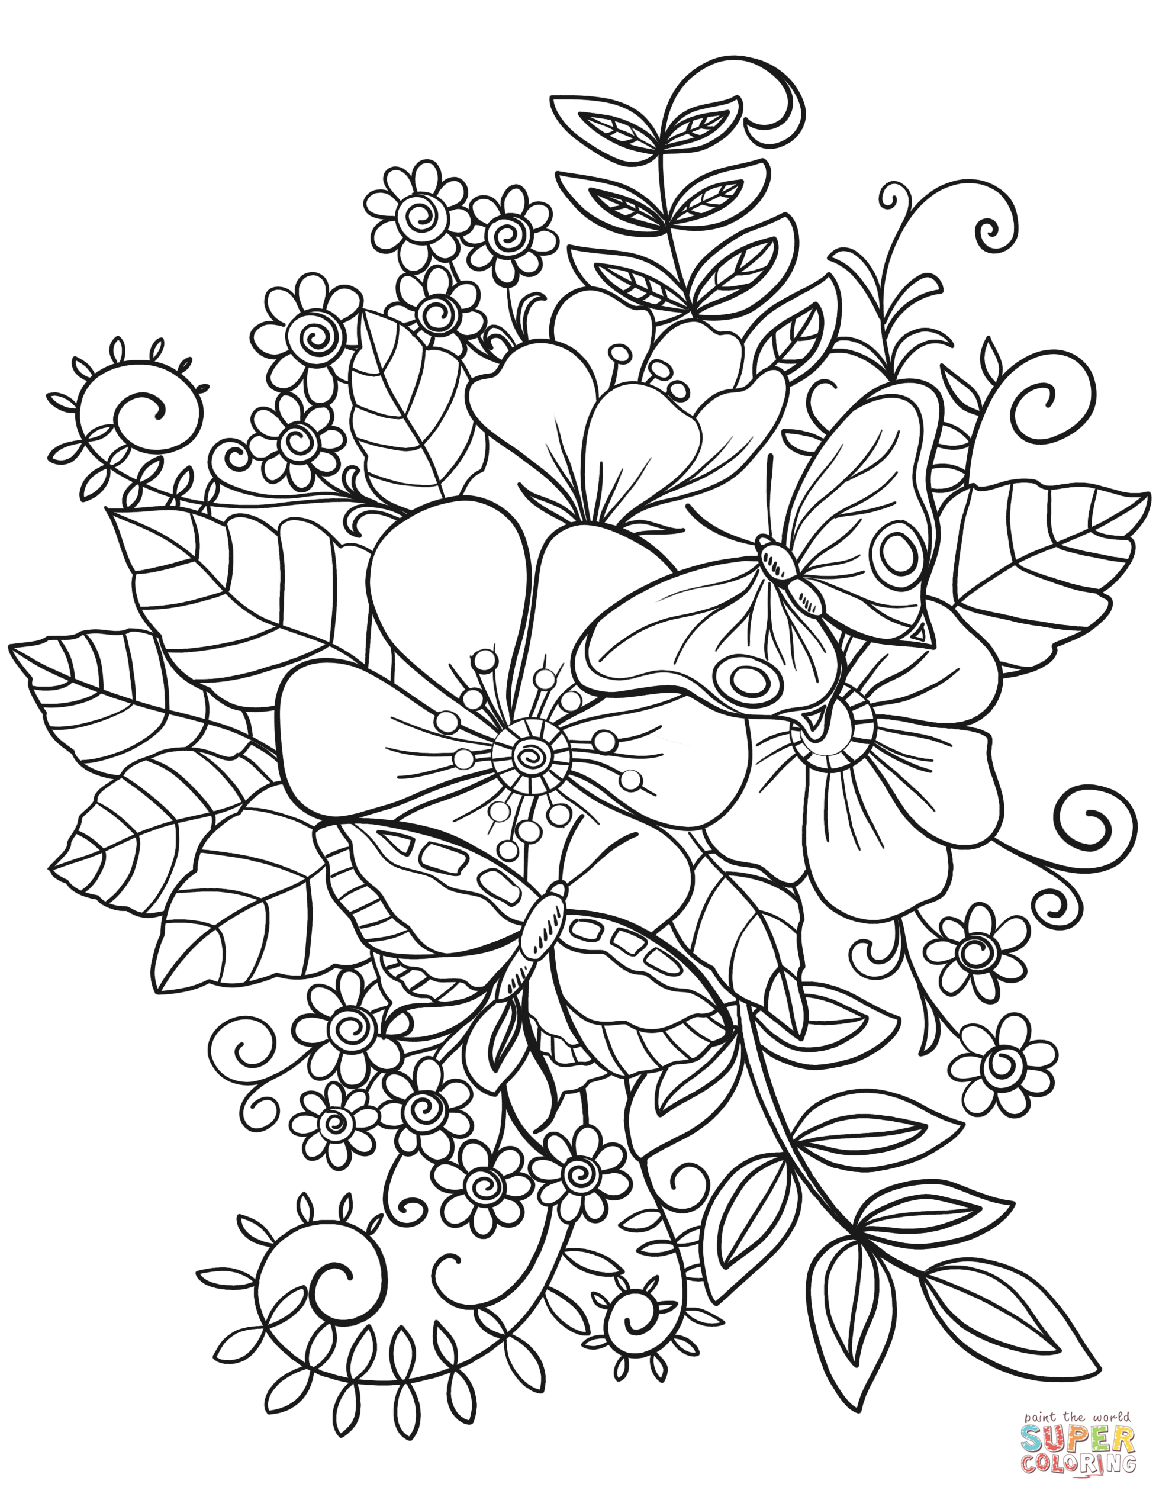 flowers coloring page free printable flower coloring pages for kids cool2bkids flowers coloring page